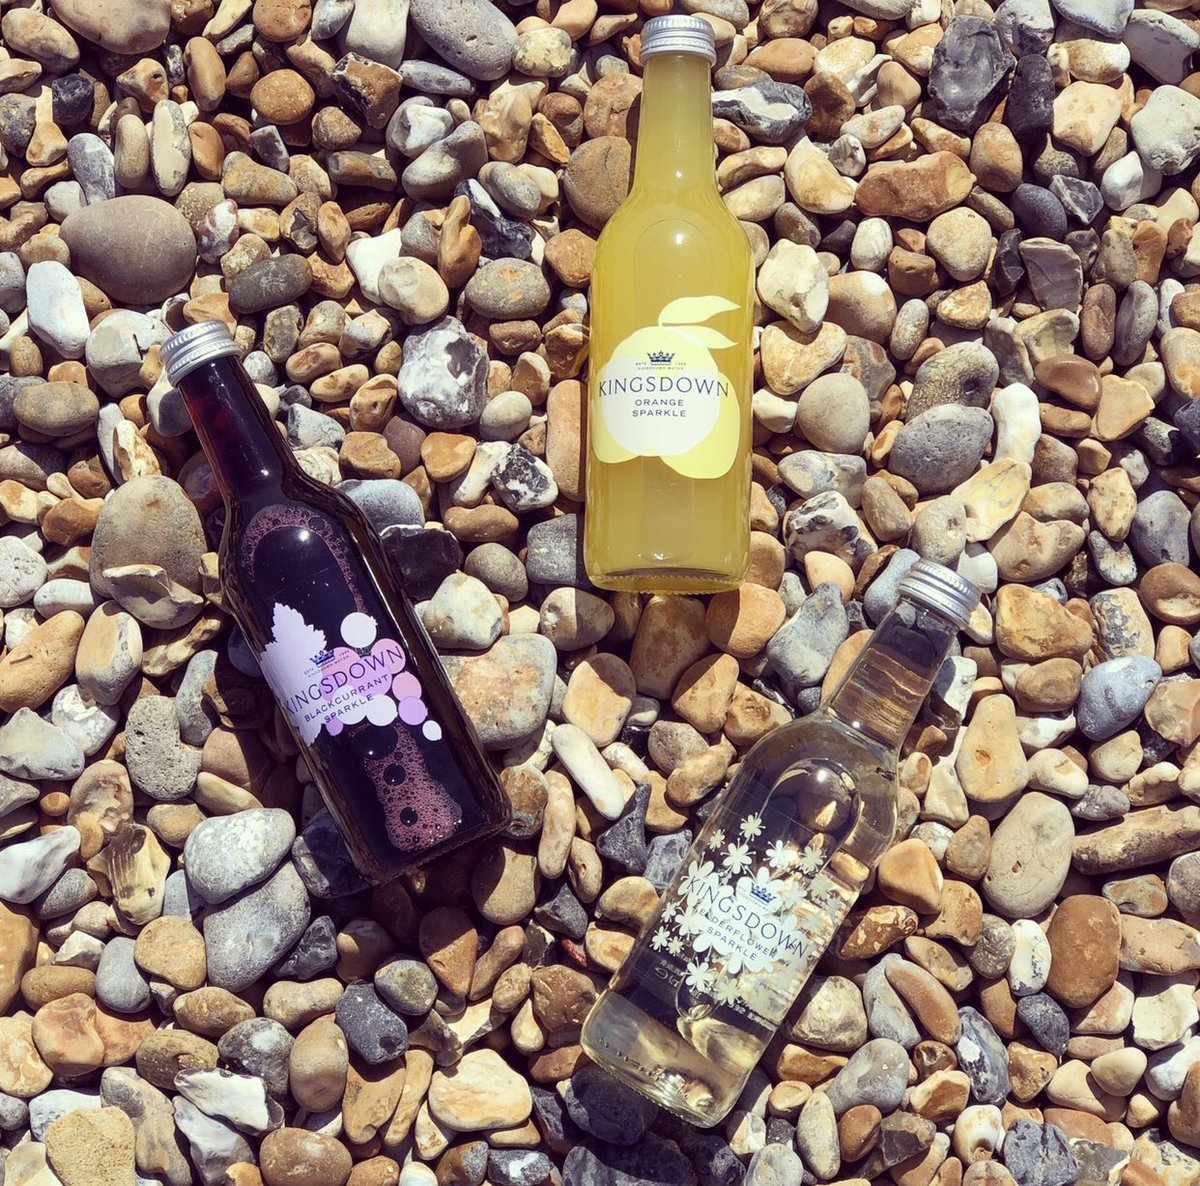 The weather is really hotting up this week☀️Keep hydrated the tasty way with our luxury grown up soft drinks. UK delivery. Free delivery on orders over £35.00 Orders will be delivered within 2 working days Head to https://t.co/eQ5voVuFtx to see our full range✨#TuesdayMotivation https://t.co/VloMSgWTIt